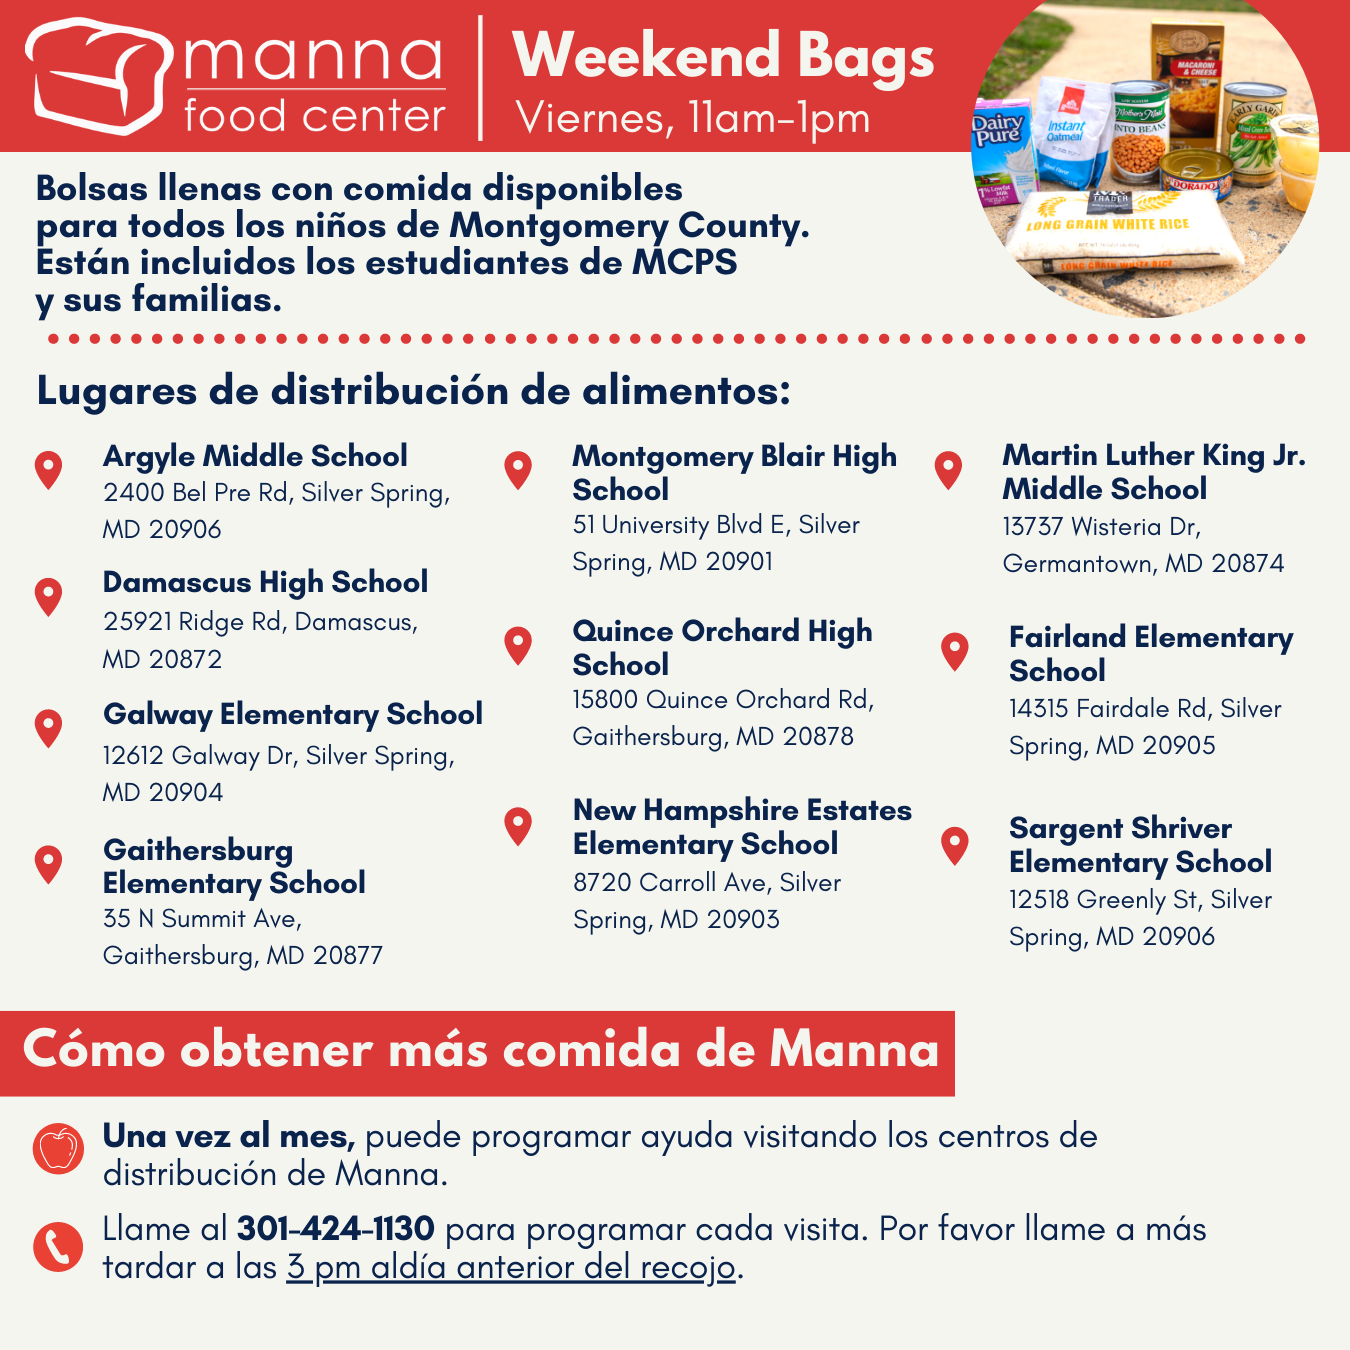 Weekend Bags announcement - Spanish